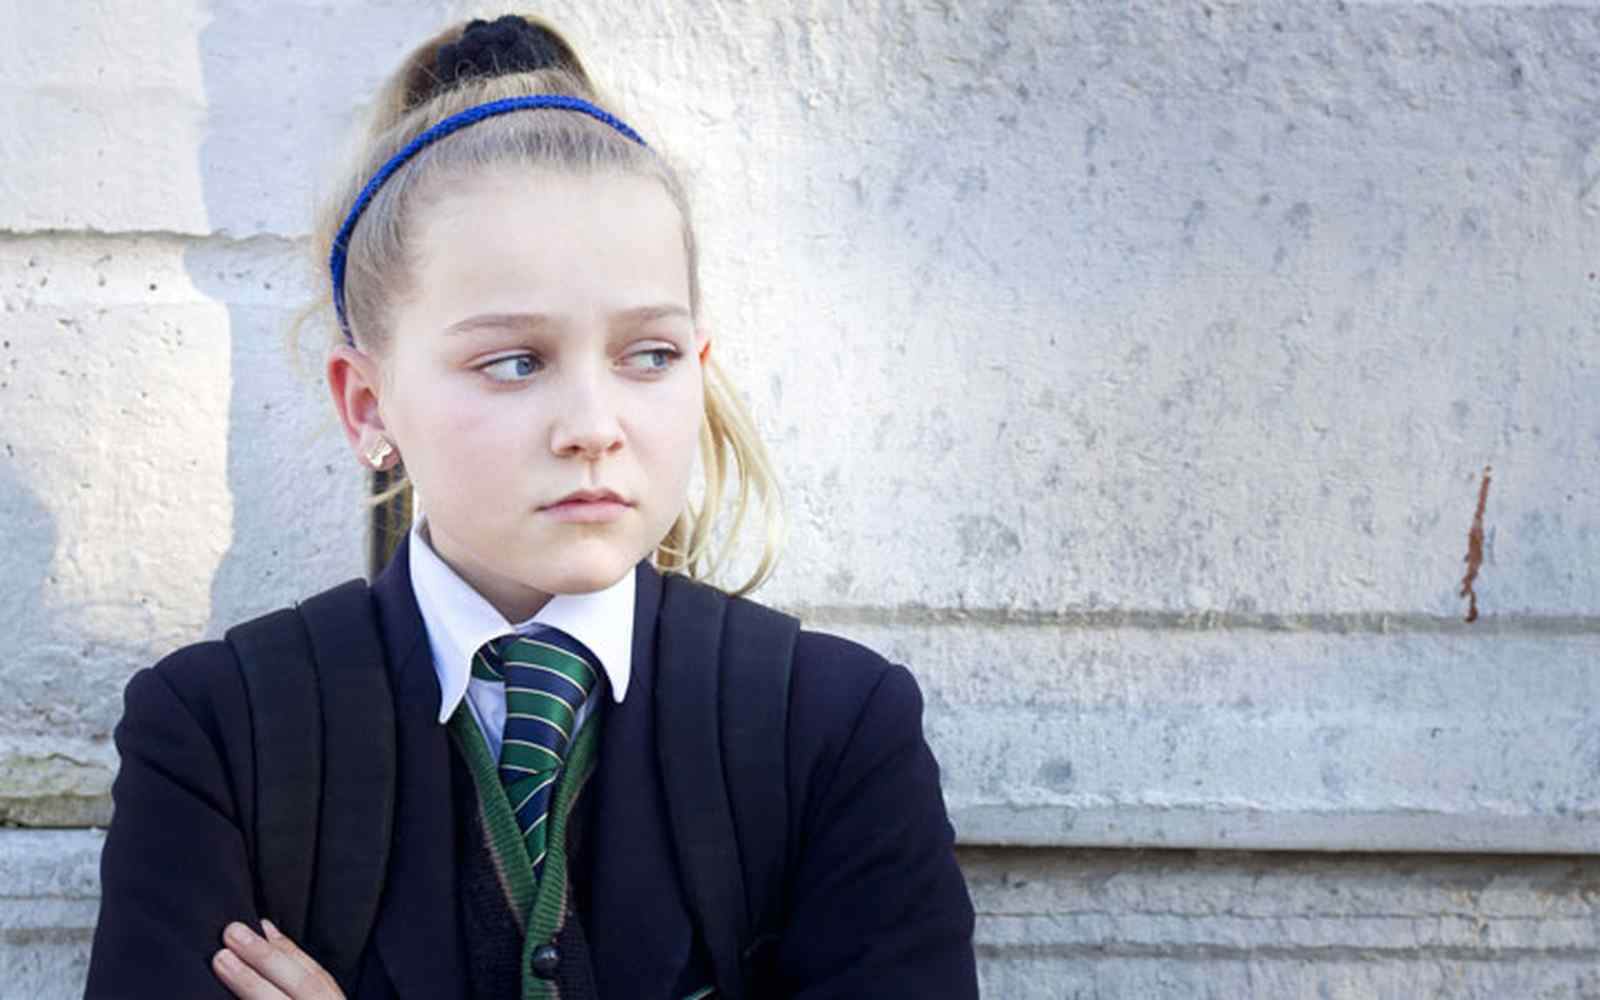 A young schoolgirl looking fearful